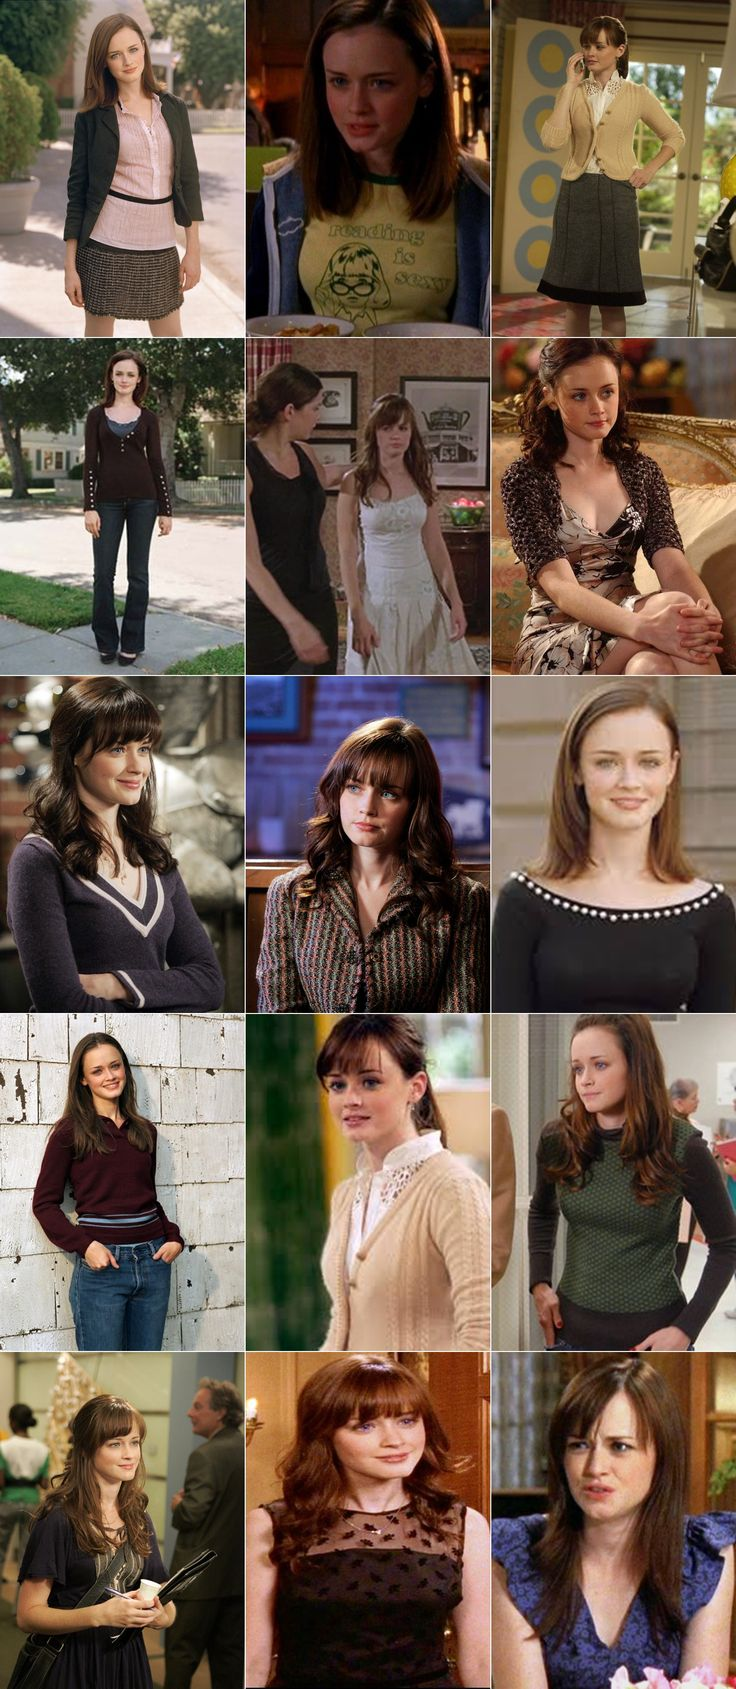 25 best ideas about rory gilmore hair on pinterest alexis bledel rory gilmore and season 7. Black Bedroom Furniture Sets. Home Design Ideas